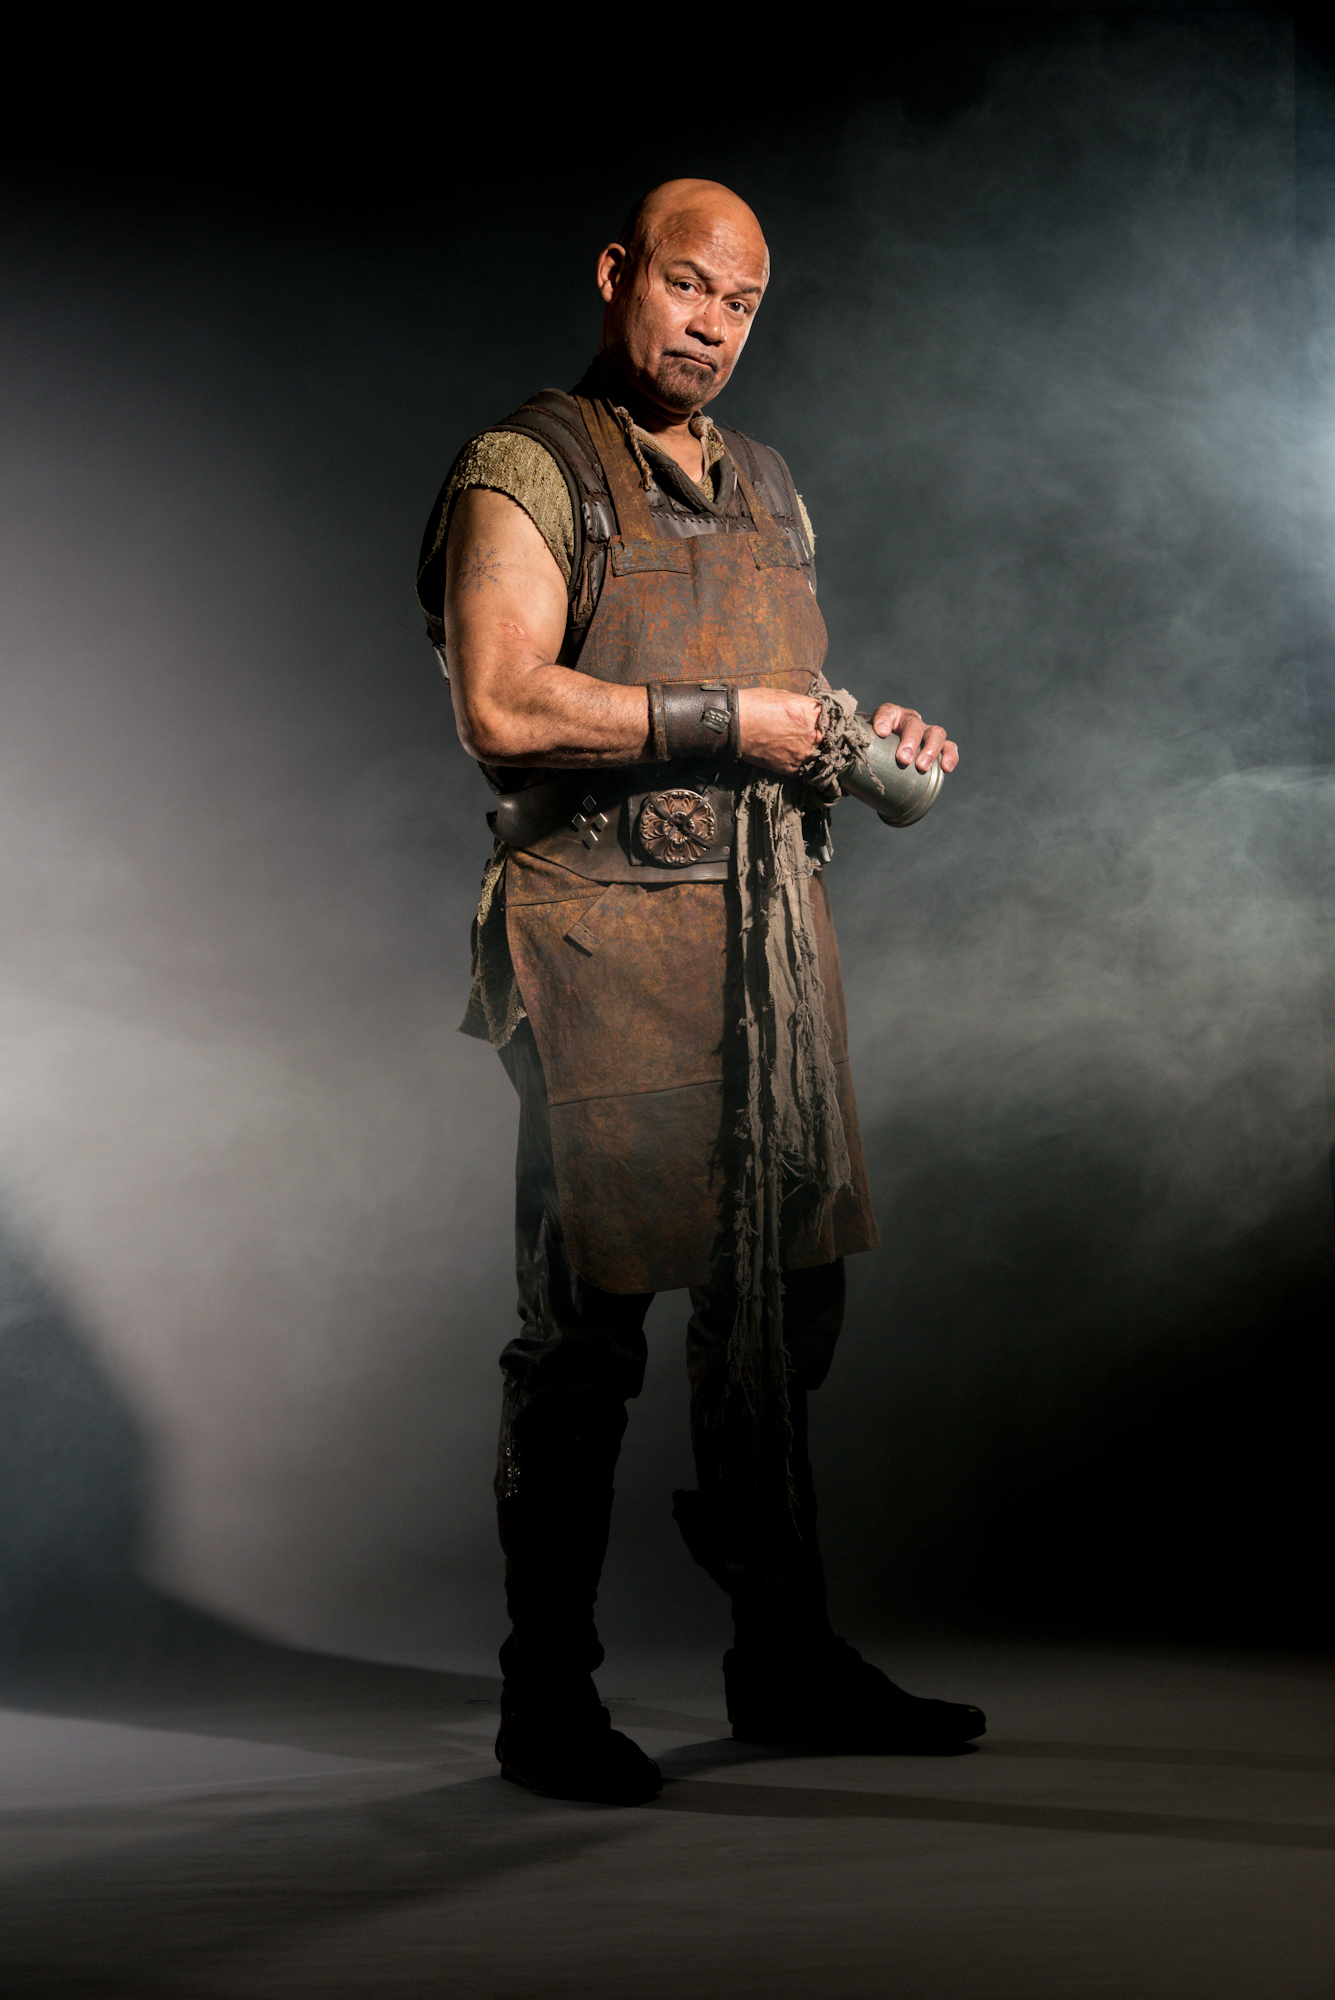 Zapped S2Picture Shows: Louis Emerick as Herman